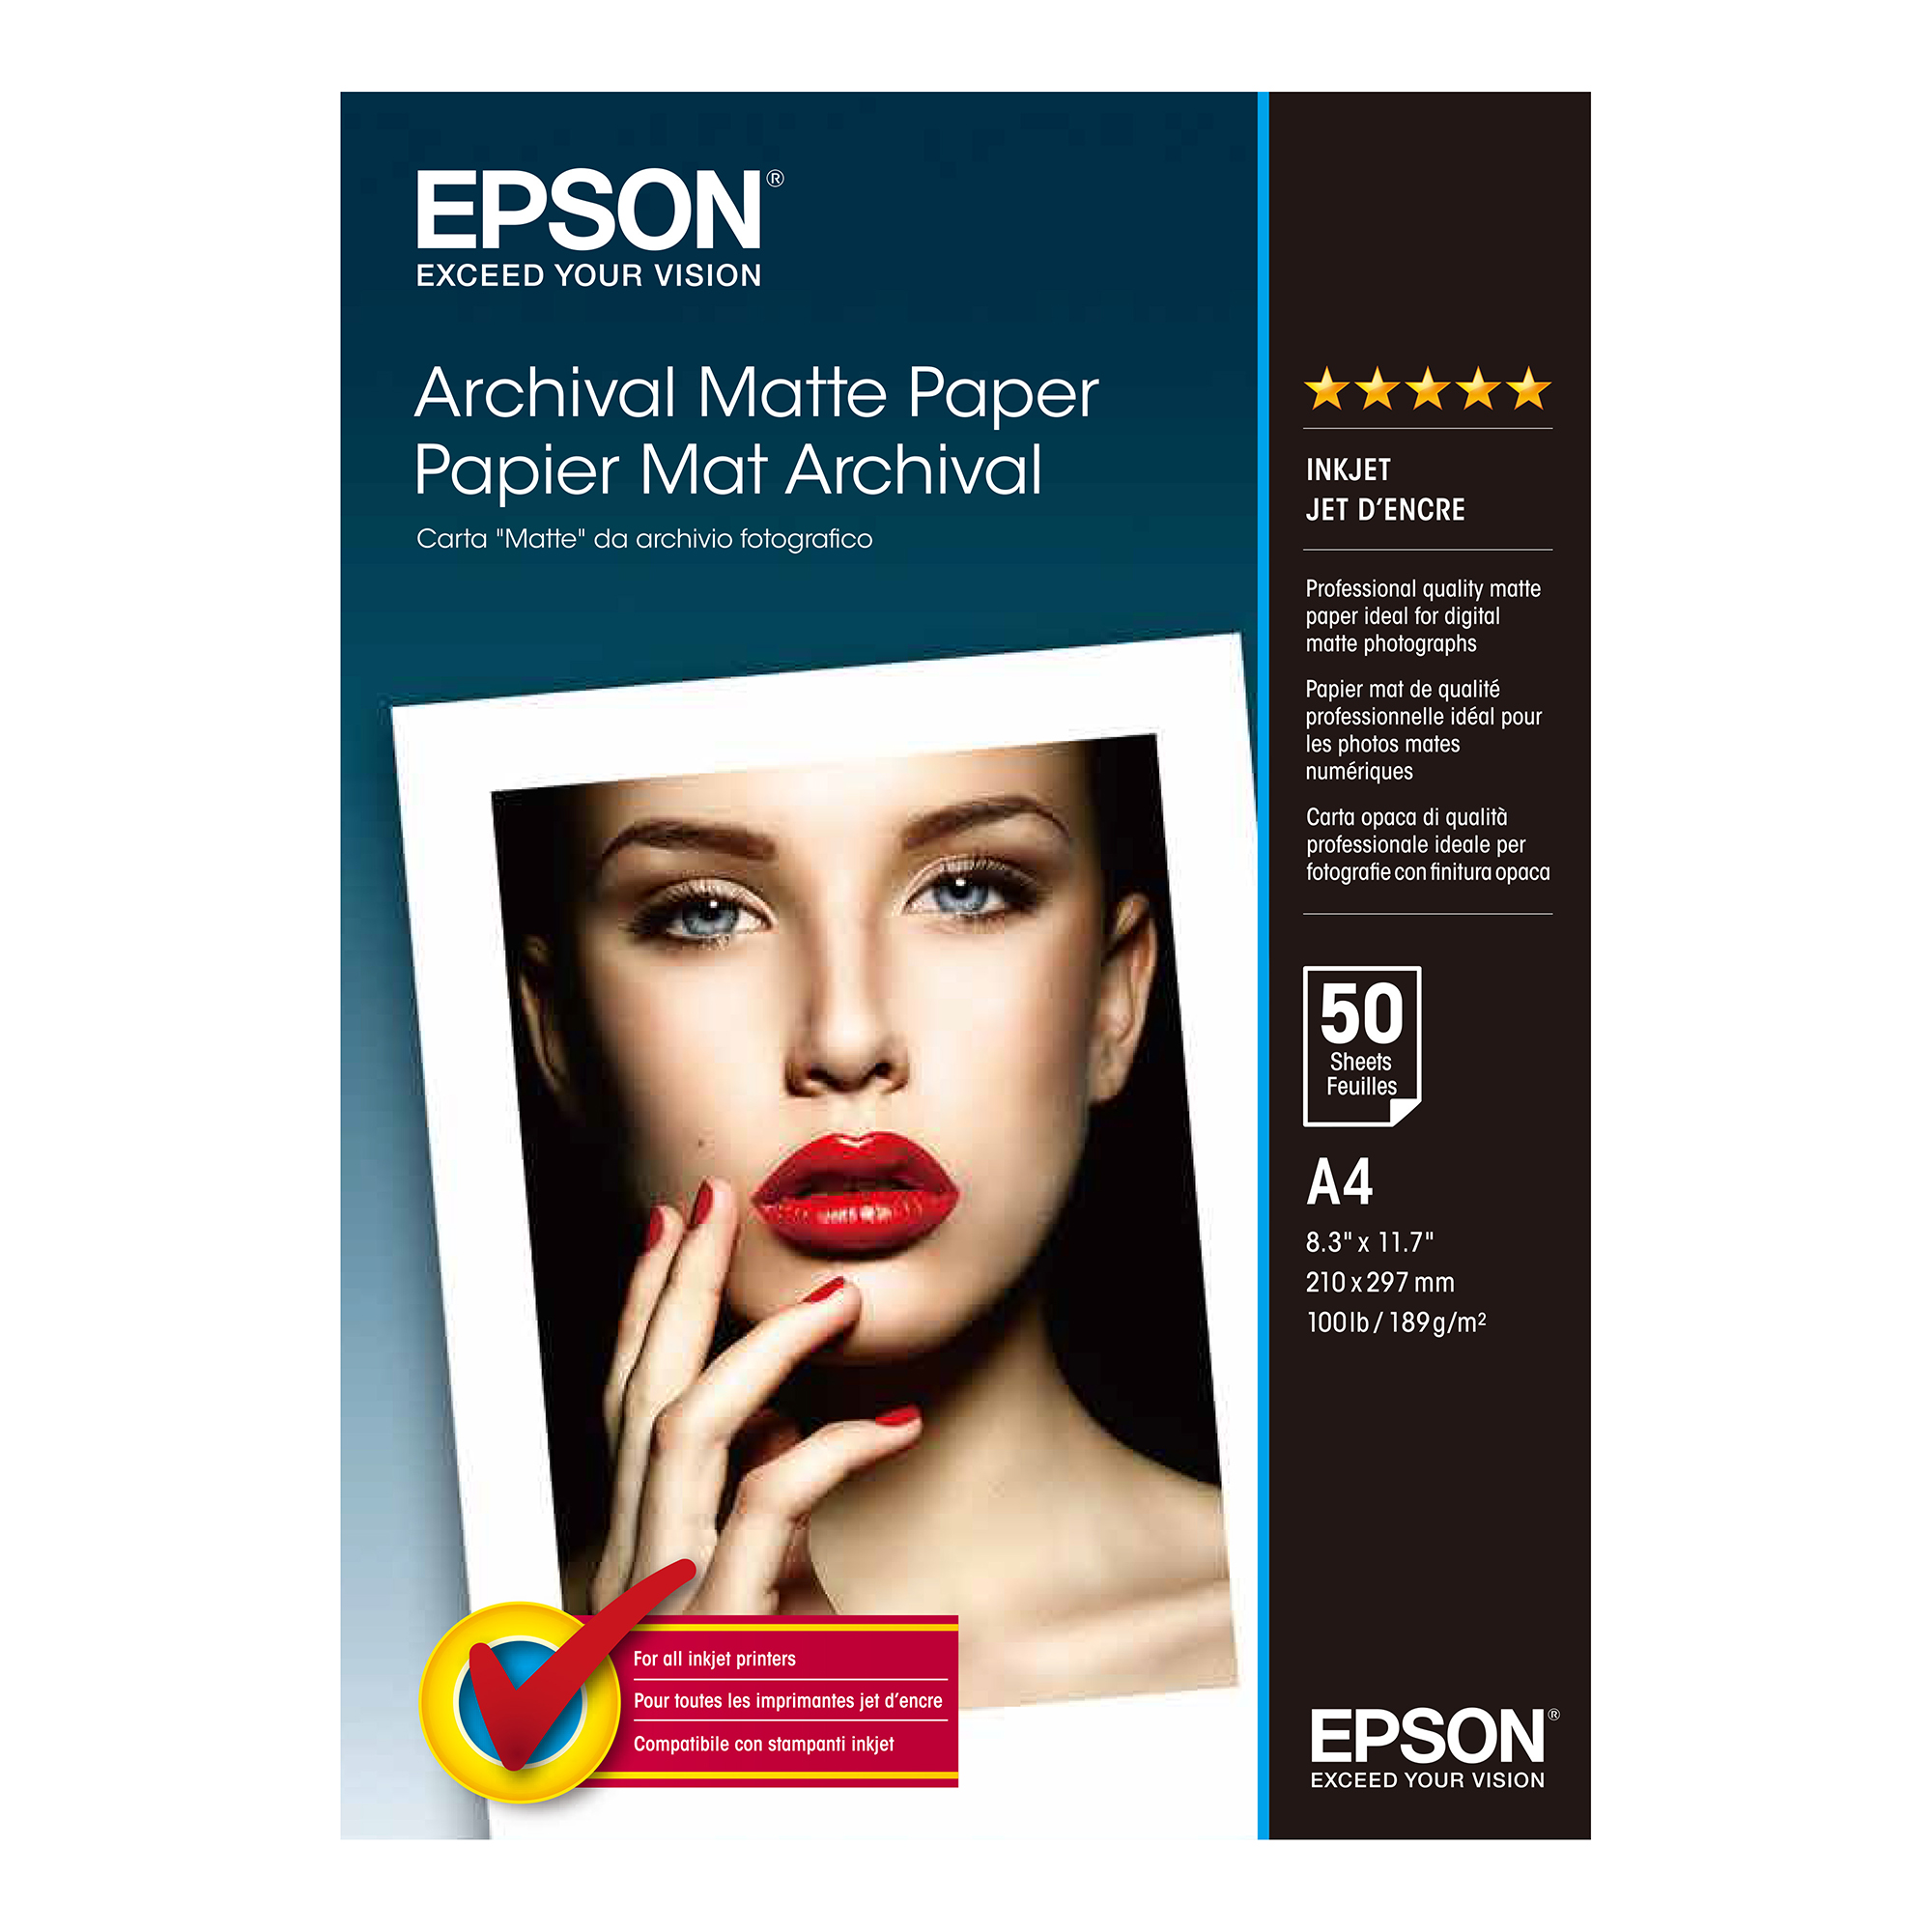 Epson A4 Archival Matte Paper 50 Sheets 192gsm White Ref C13S041342 3 to 5 Day Leadtime